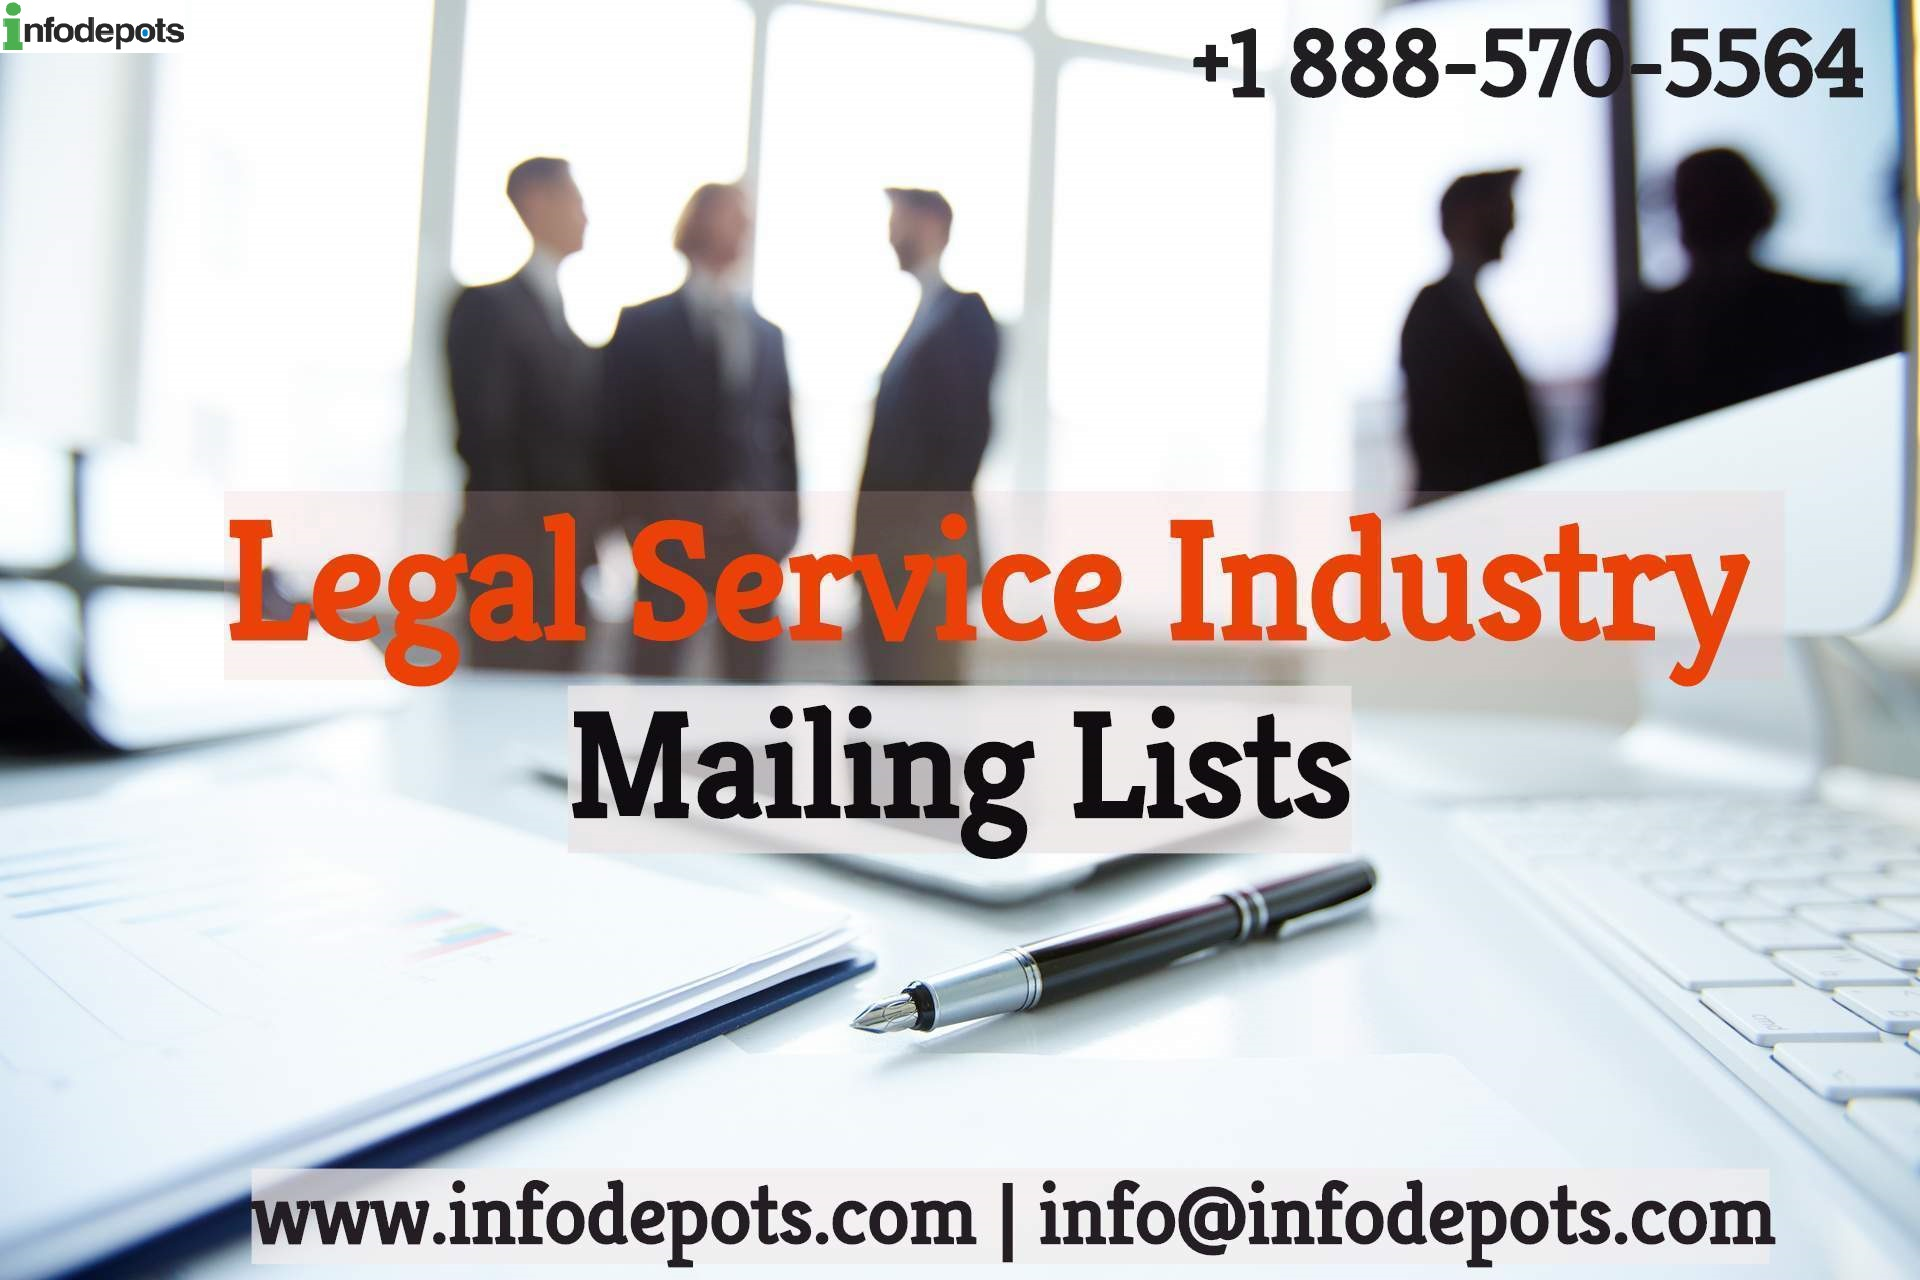 Buy 2019 Updated | Legal Service Industry Email List | List of Legal Services Companies | InfoDepots